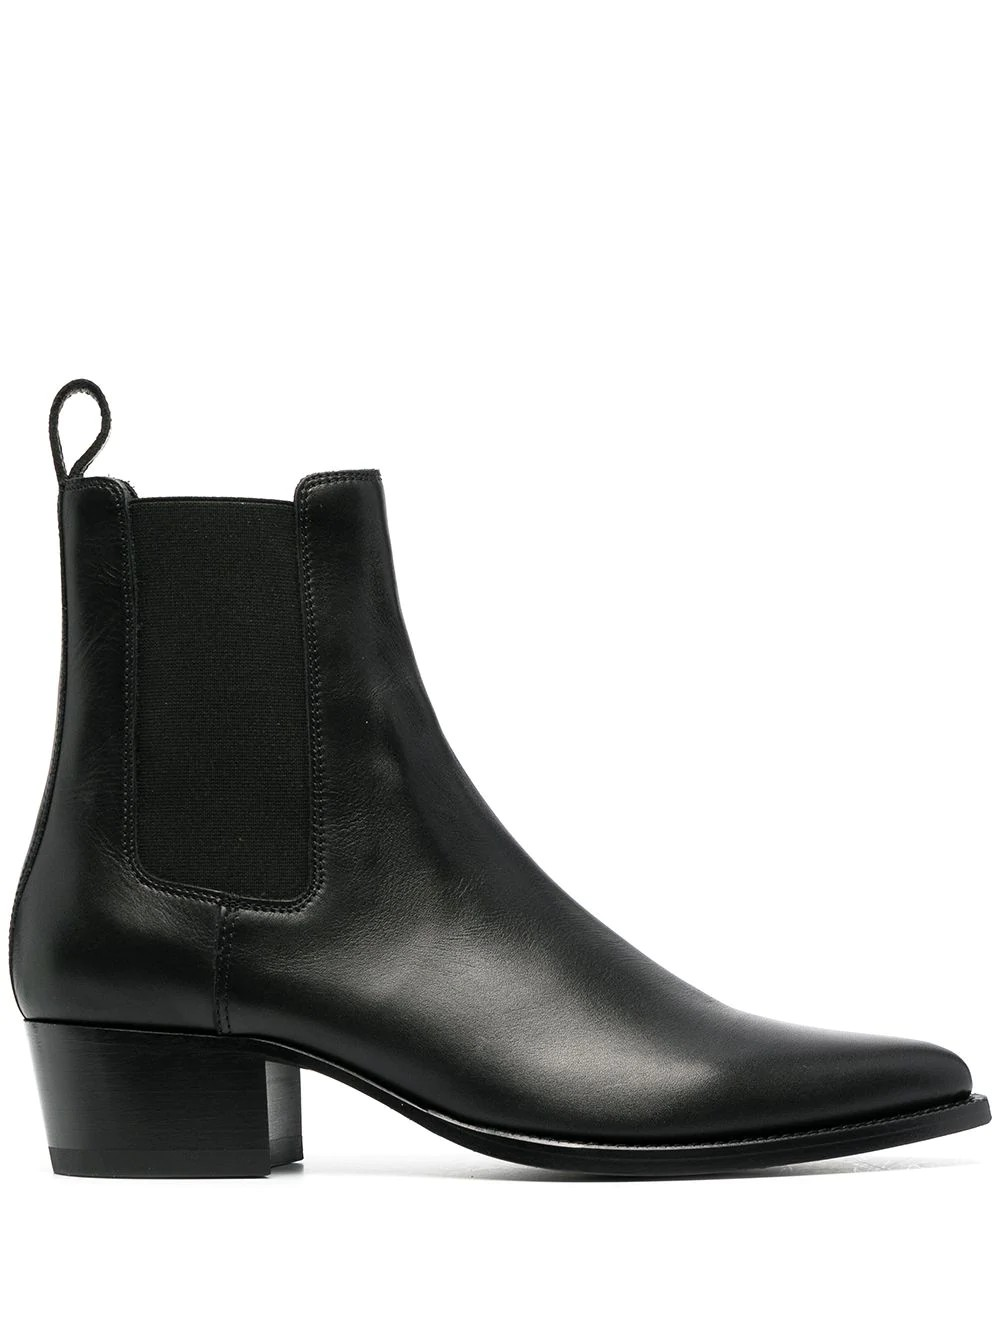 CHELSEA LEATHER SOLE BOOT